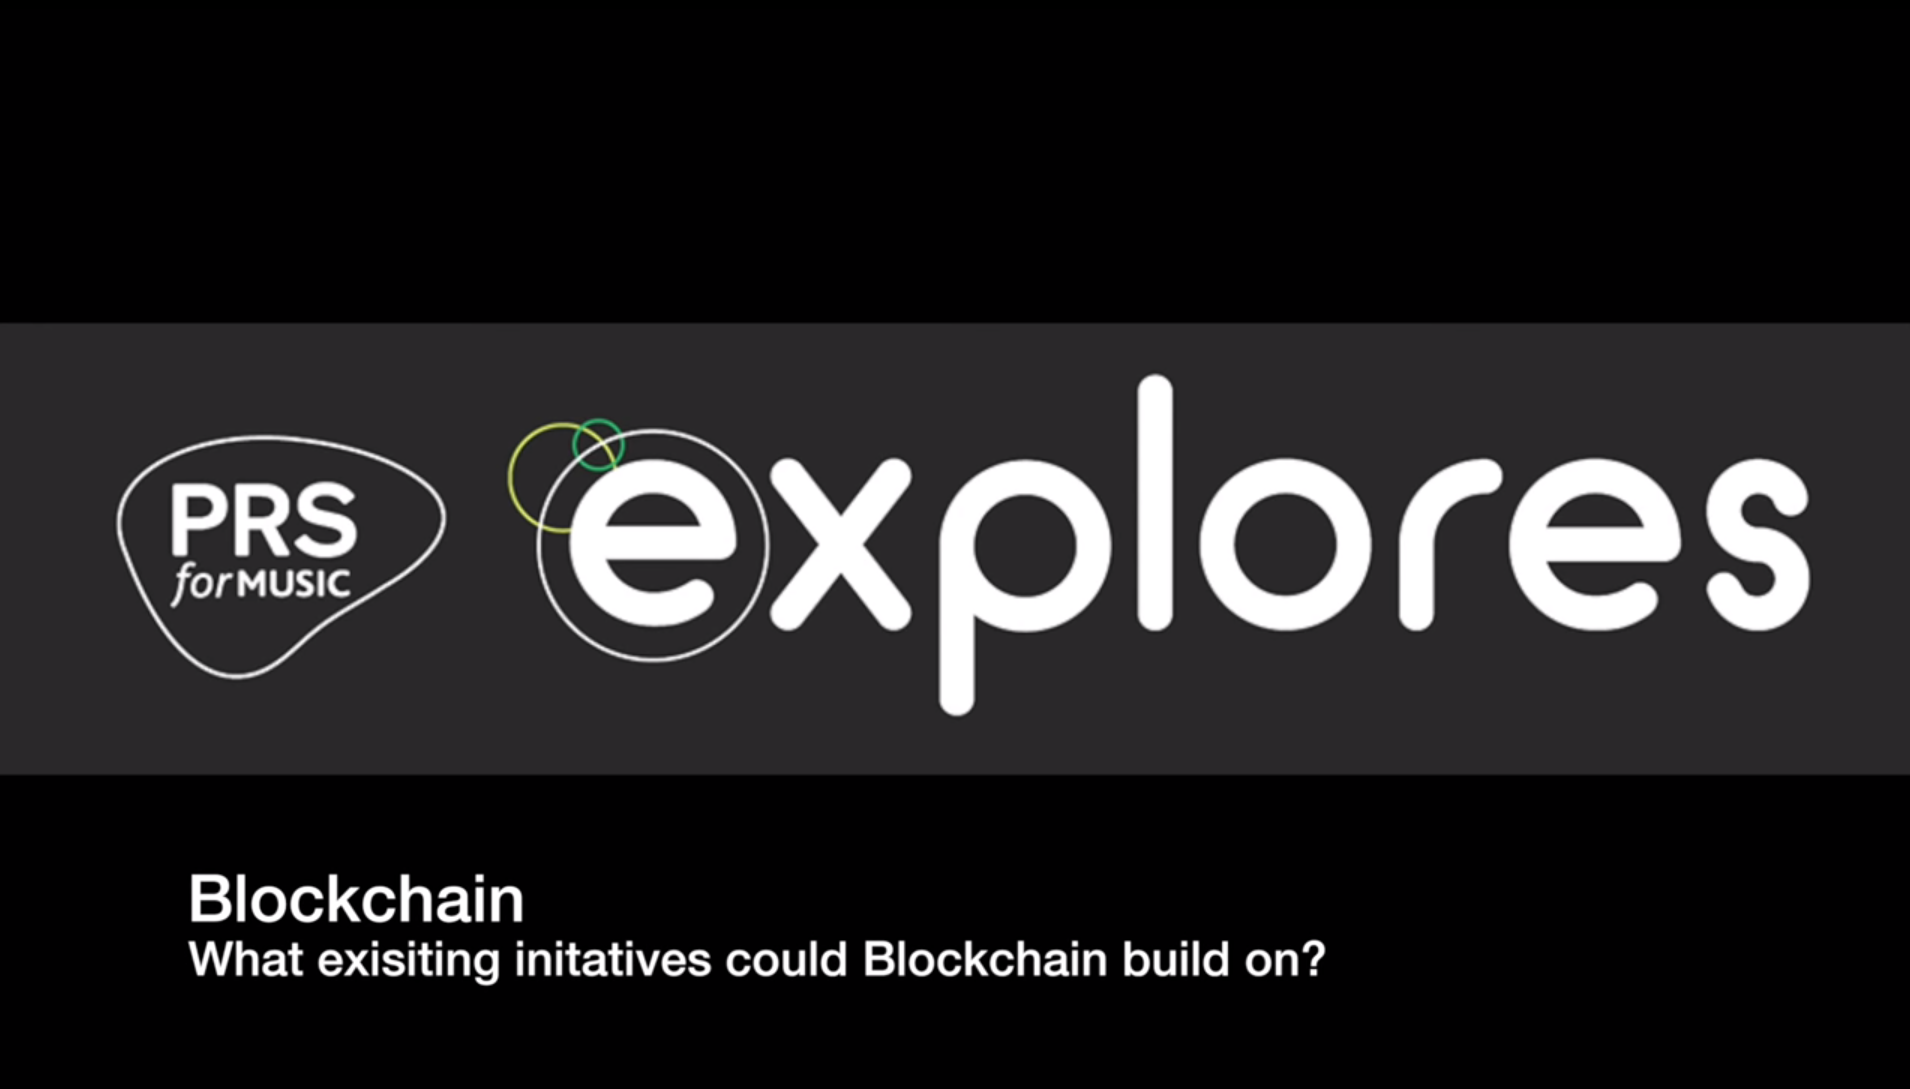 Blockchain existing initiatives